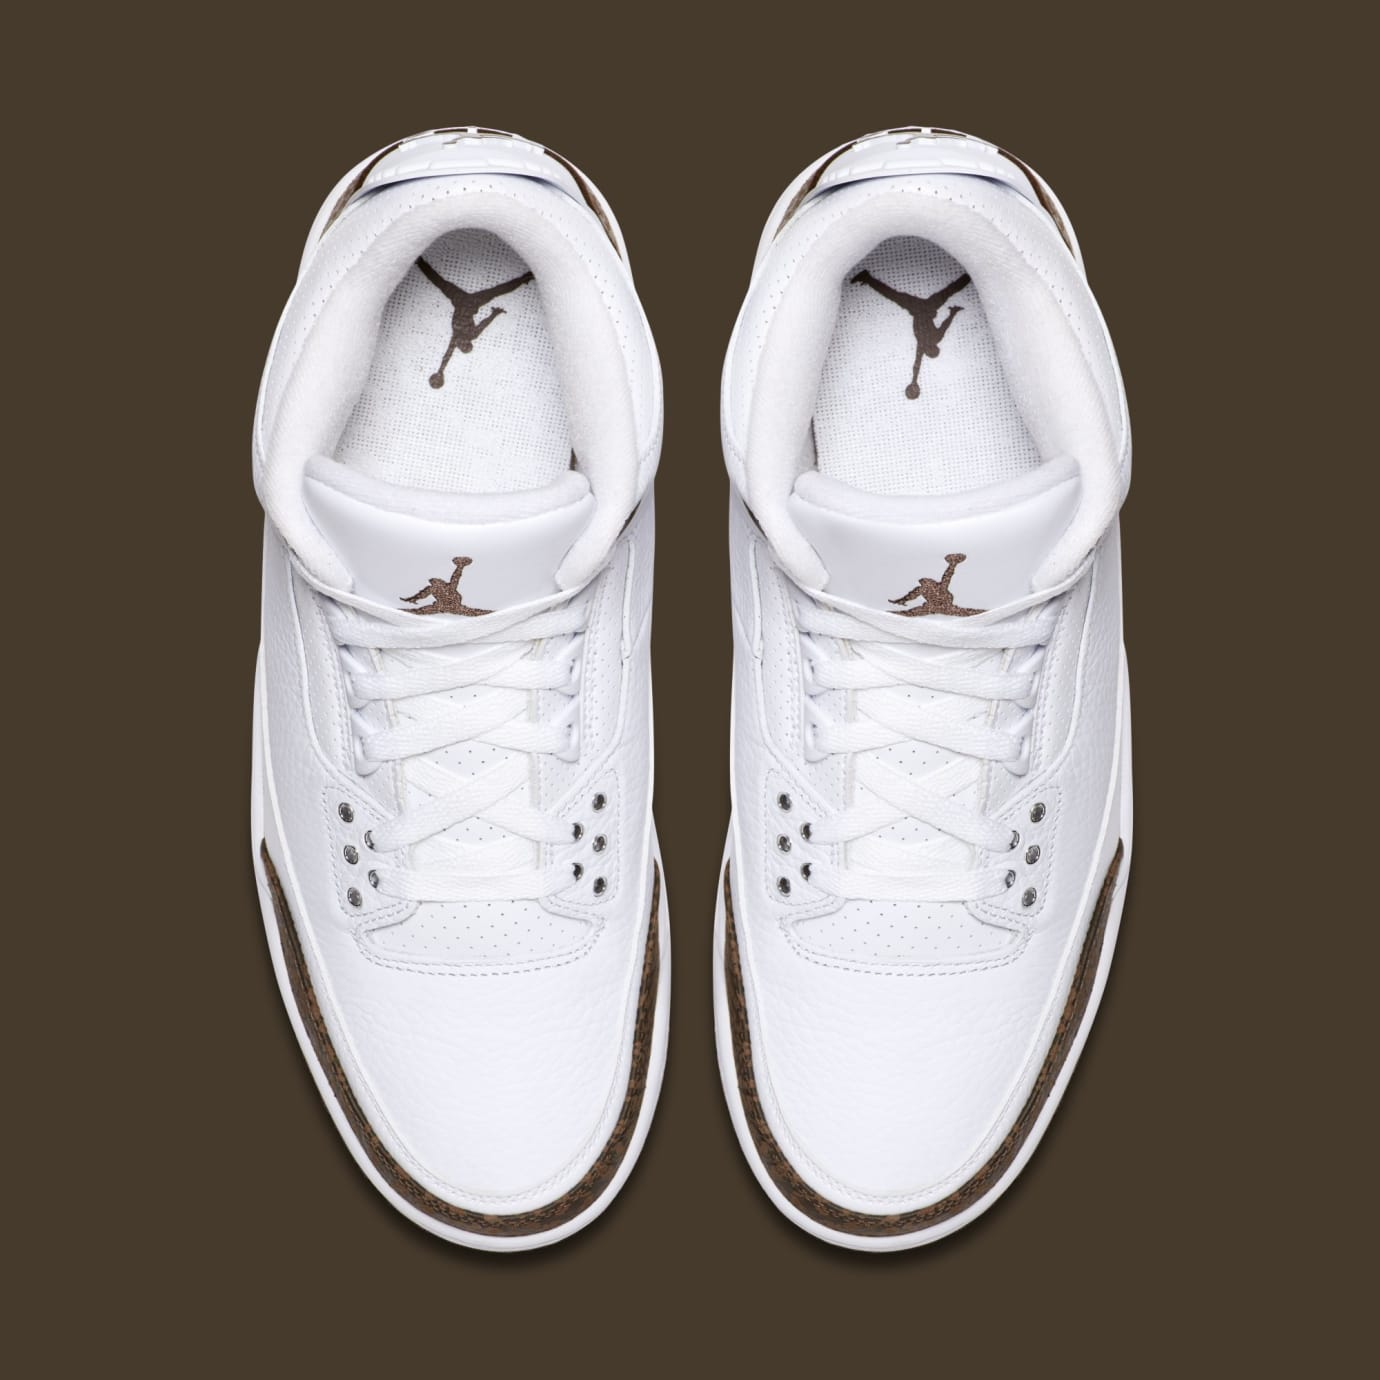 Image via Nike Air Jordan 3  Mocha  White Chrome-Dark Mocha 136064-122 ( 705160176076